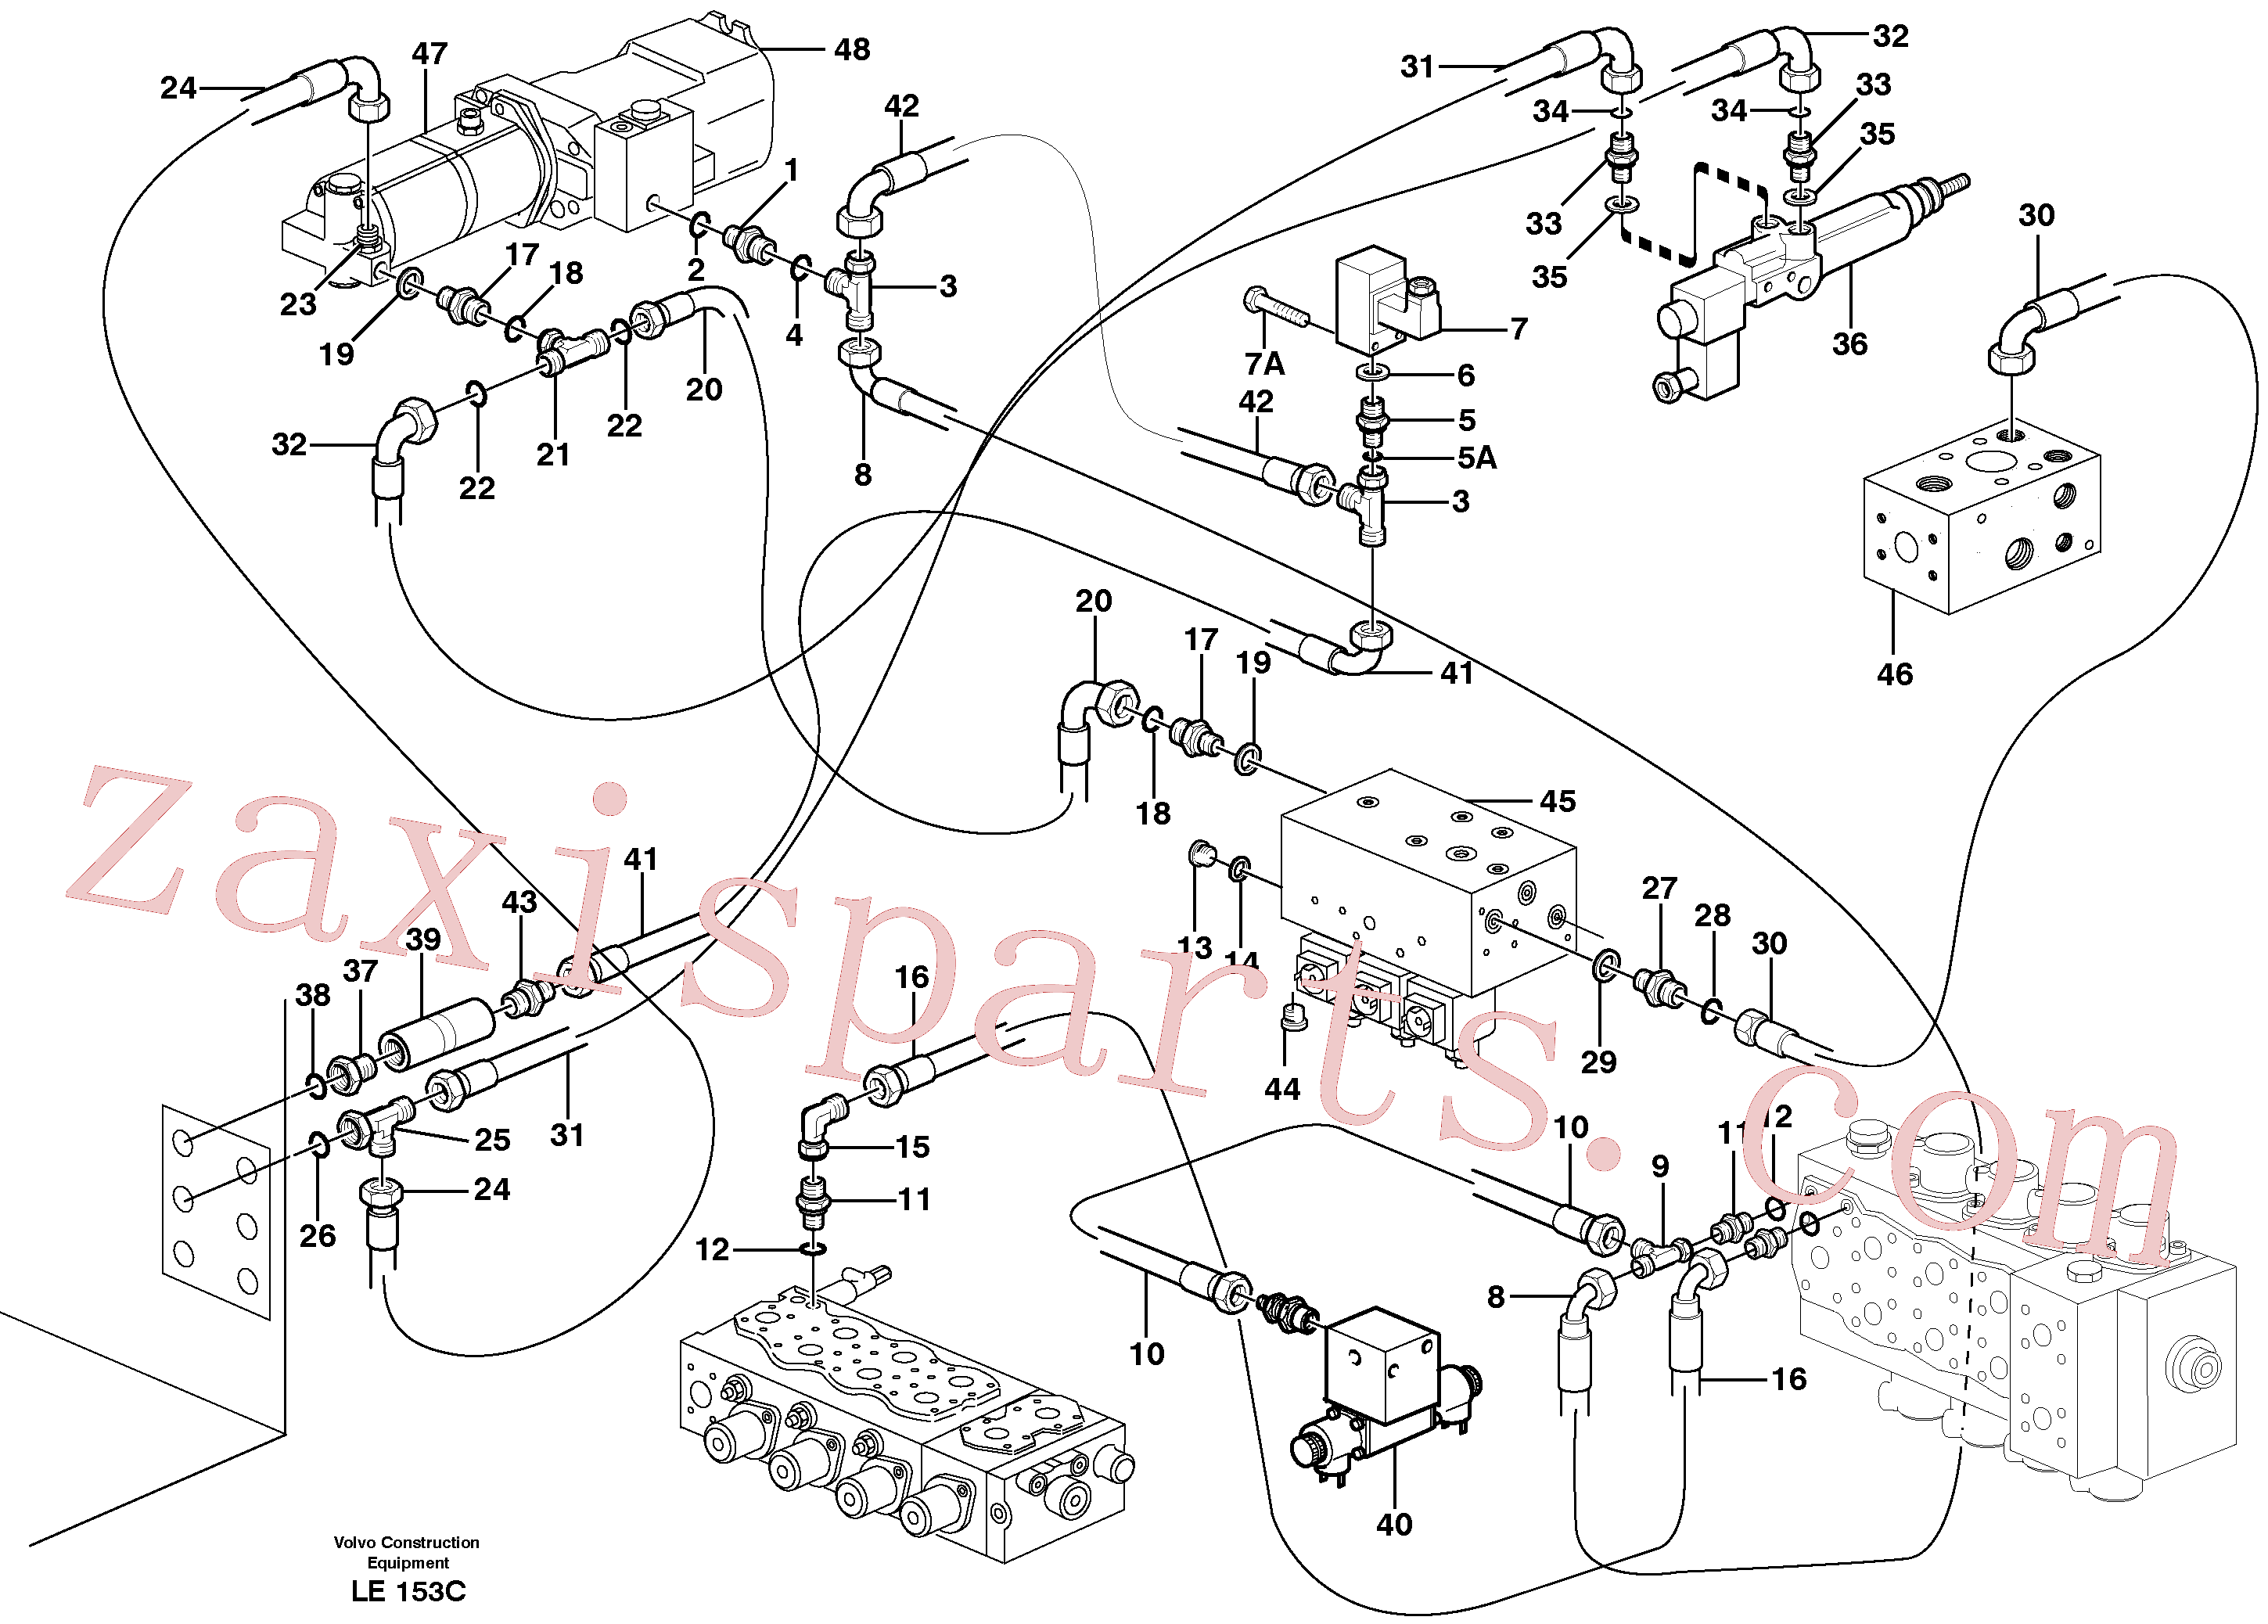 VOE14378768 for Volvo Servo hydraulics, speed regulation(LE153C assembly)